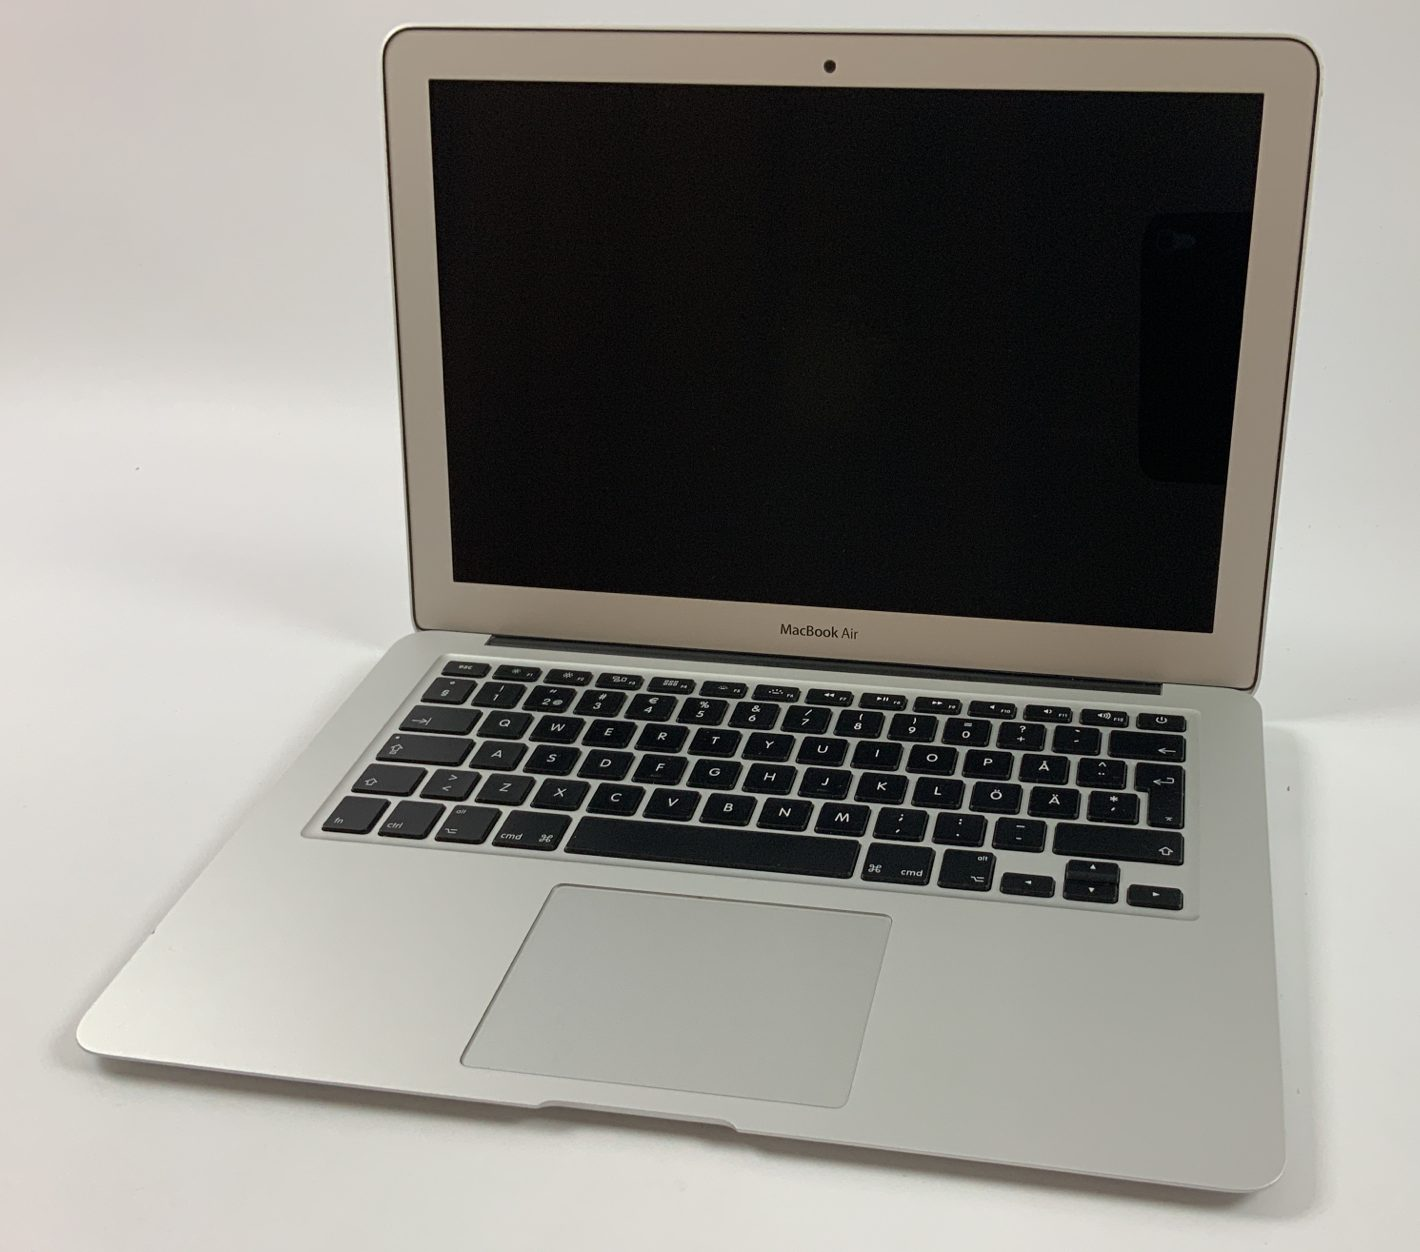 "MacBook Air 13"" Early 2015 (Intel Core i5 1.6 GHz 4 GB RAM 128 GB SSD), Intel Core i5 1.6 GHz, 4 GB RAM, 128 GB SSD, Kuva 1"